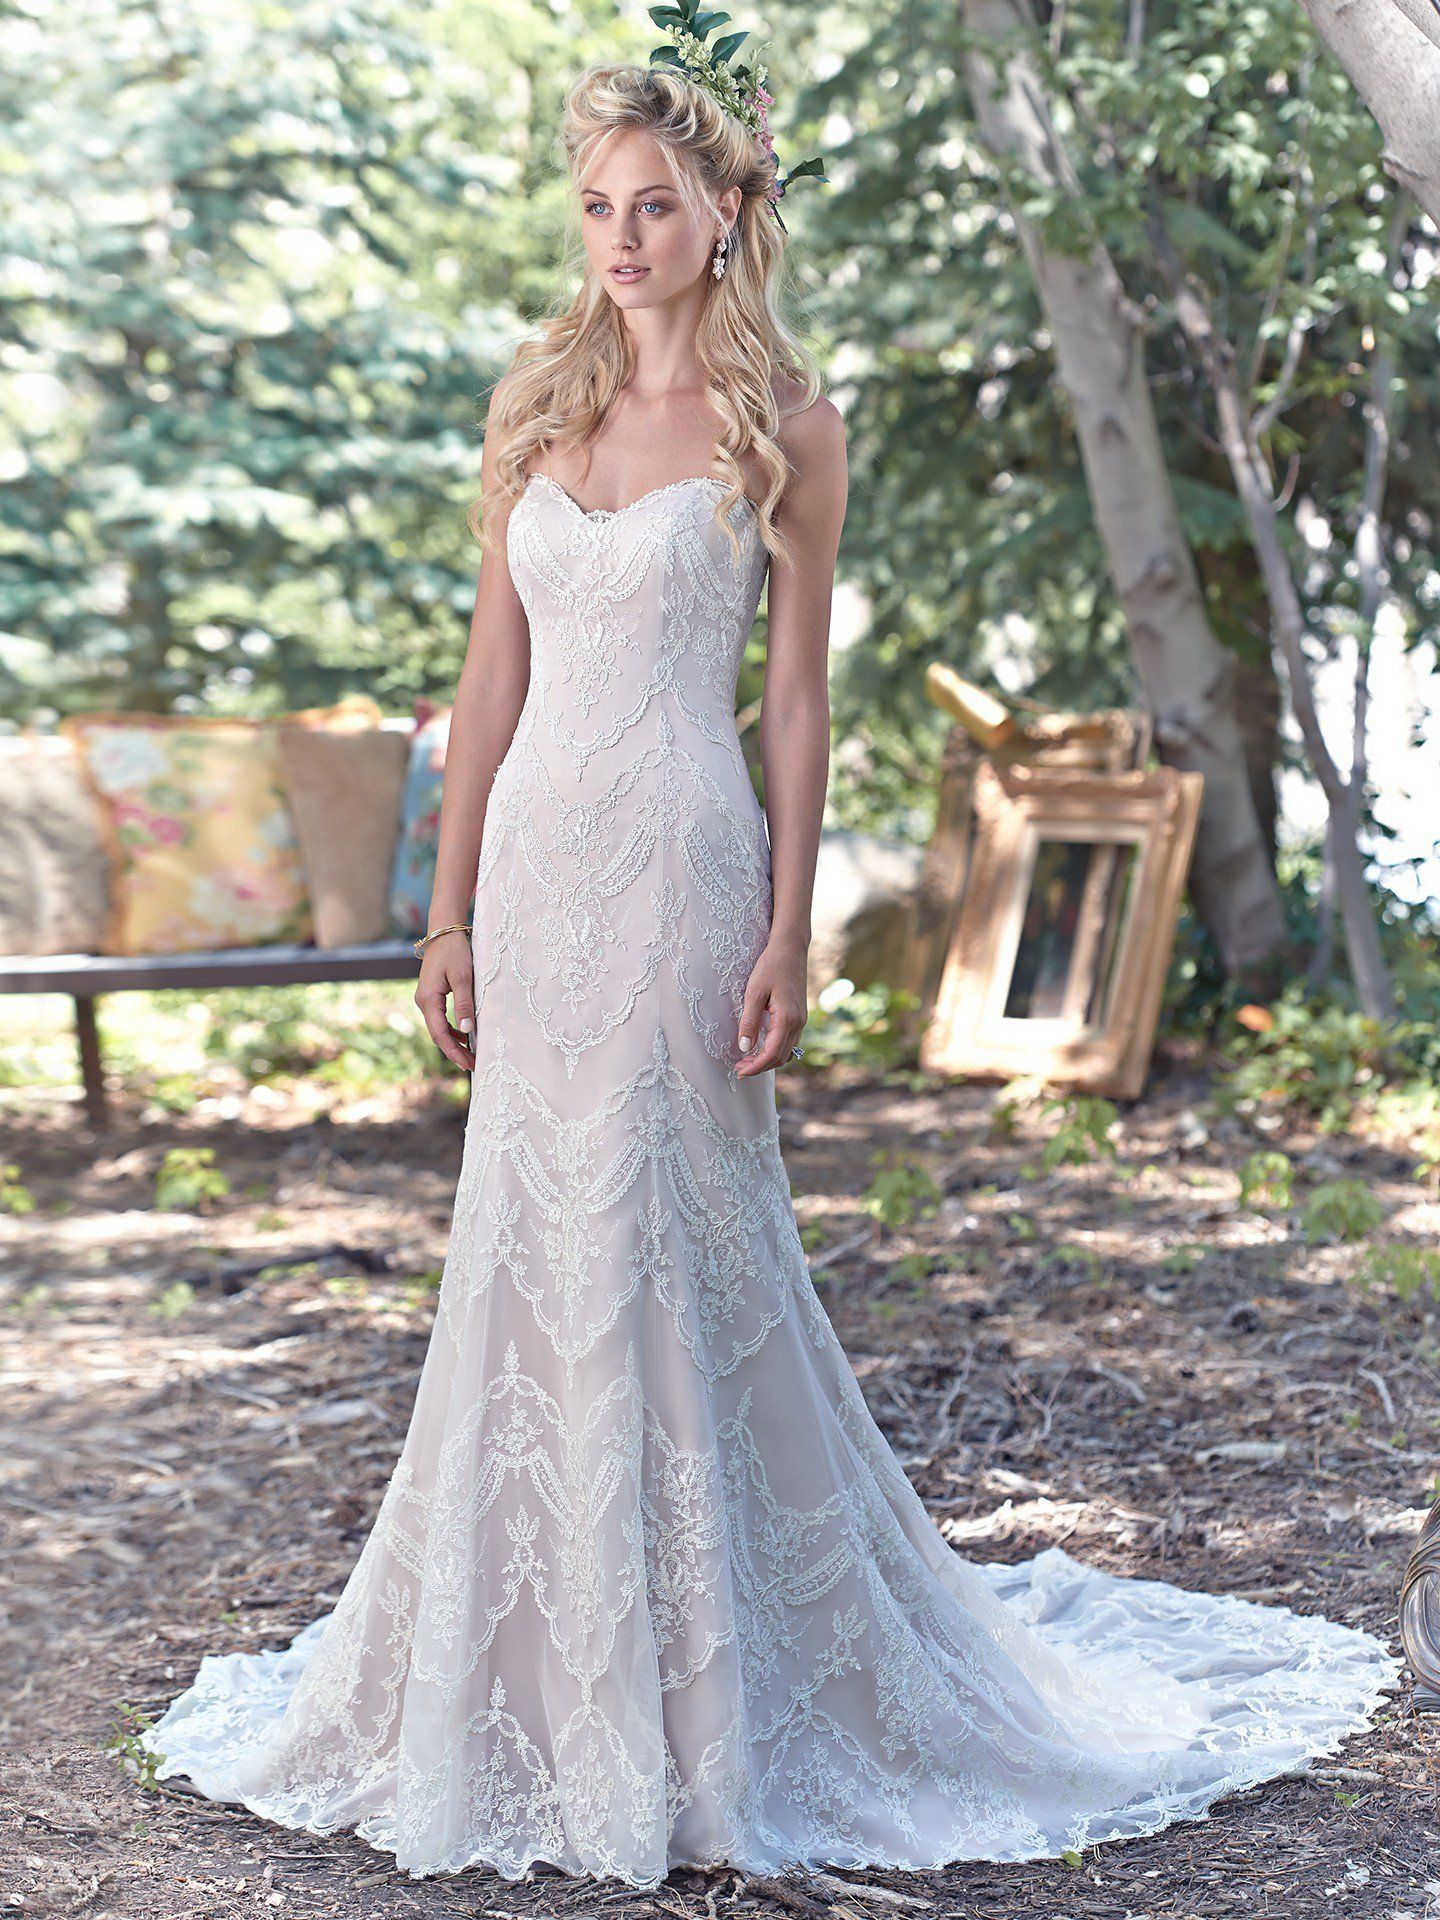 Elegant lace appliqués drift atop tulle to create this breathtaking bohemian  sheath wedding dress 15afd555b6e0